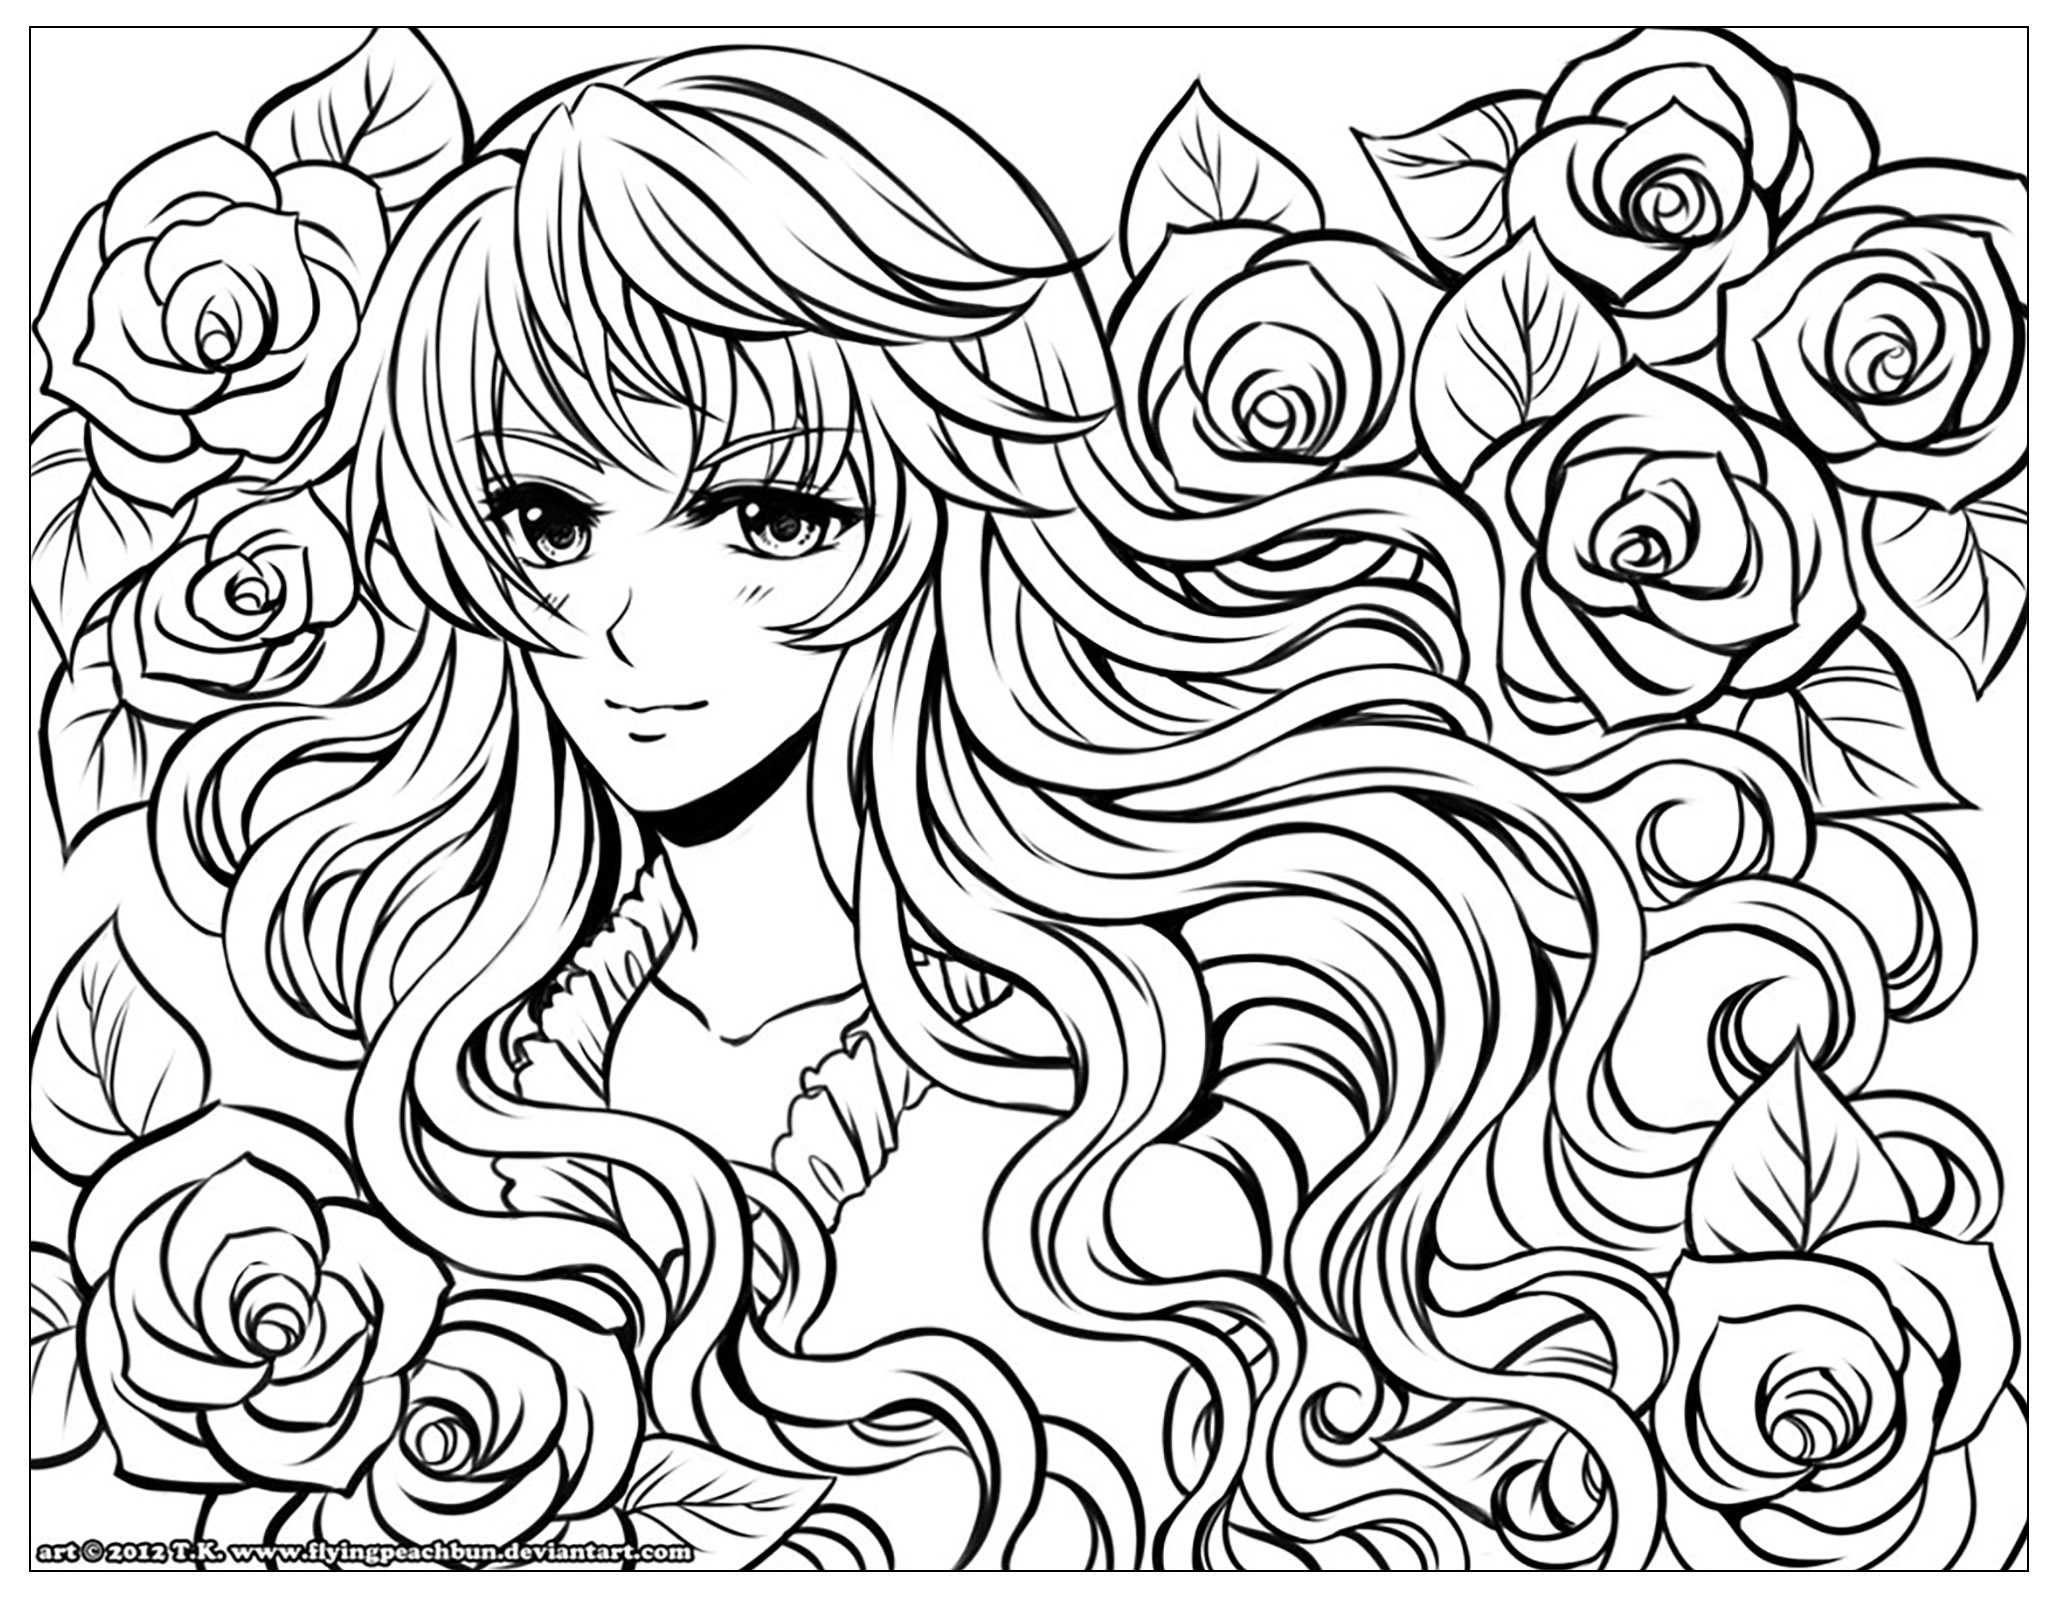 Coloring Pages Anime Manga Girl With Flowers Manga Anime Adult Coloring Pages